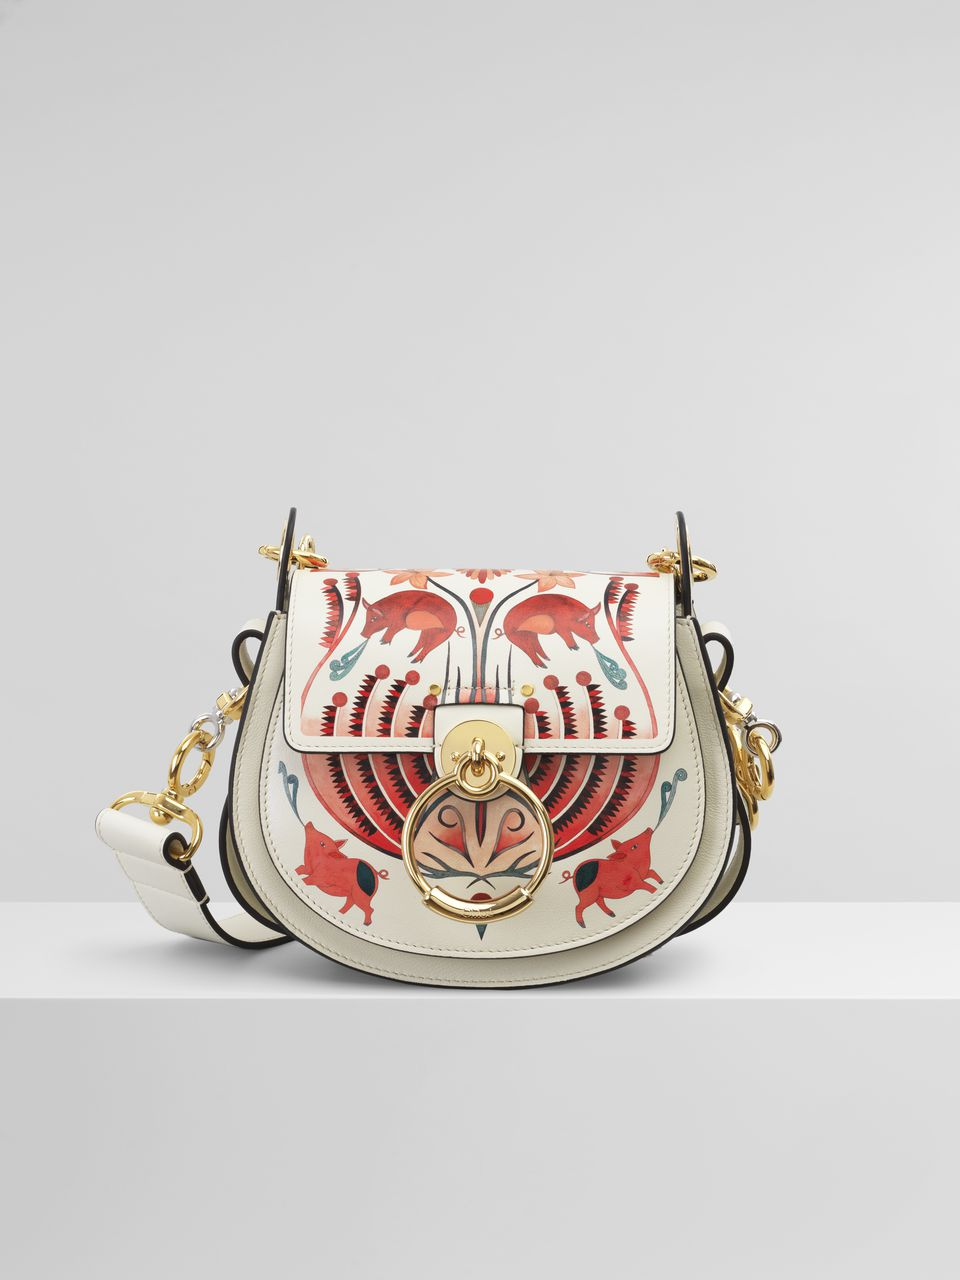 Chloe Spring Summer 2019 Bag Collection Features The C Bag